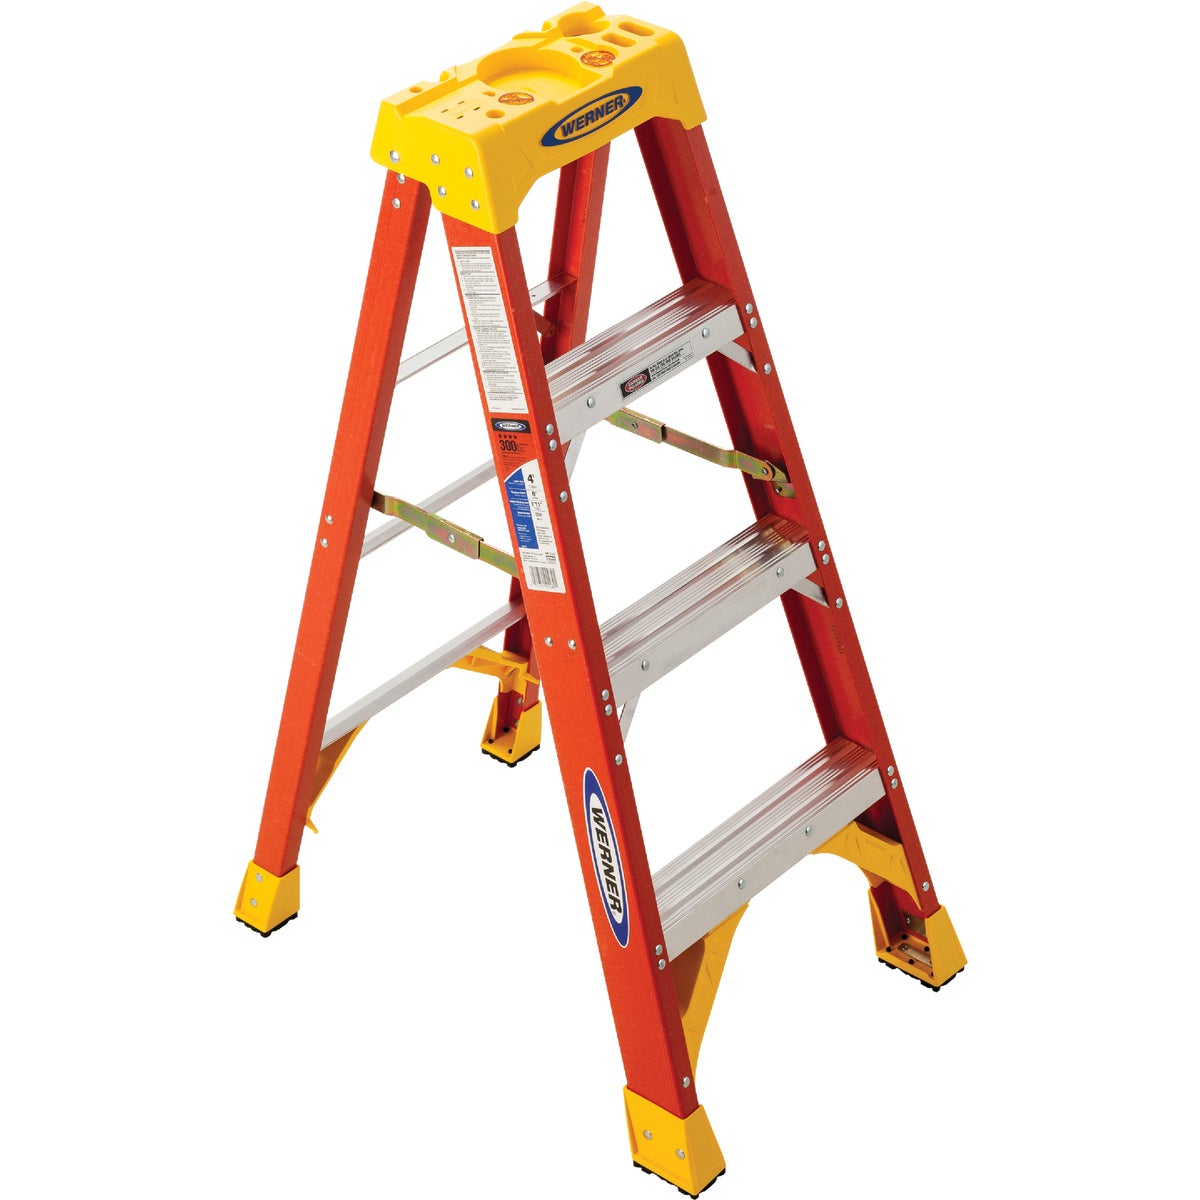 T-1A 4' FBGL STEPLADDER - 6204 by Werner Co